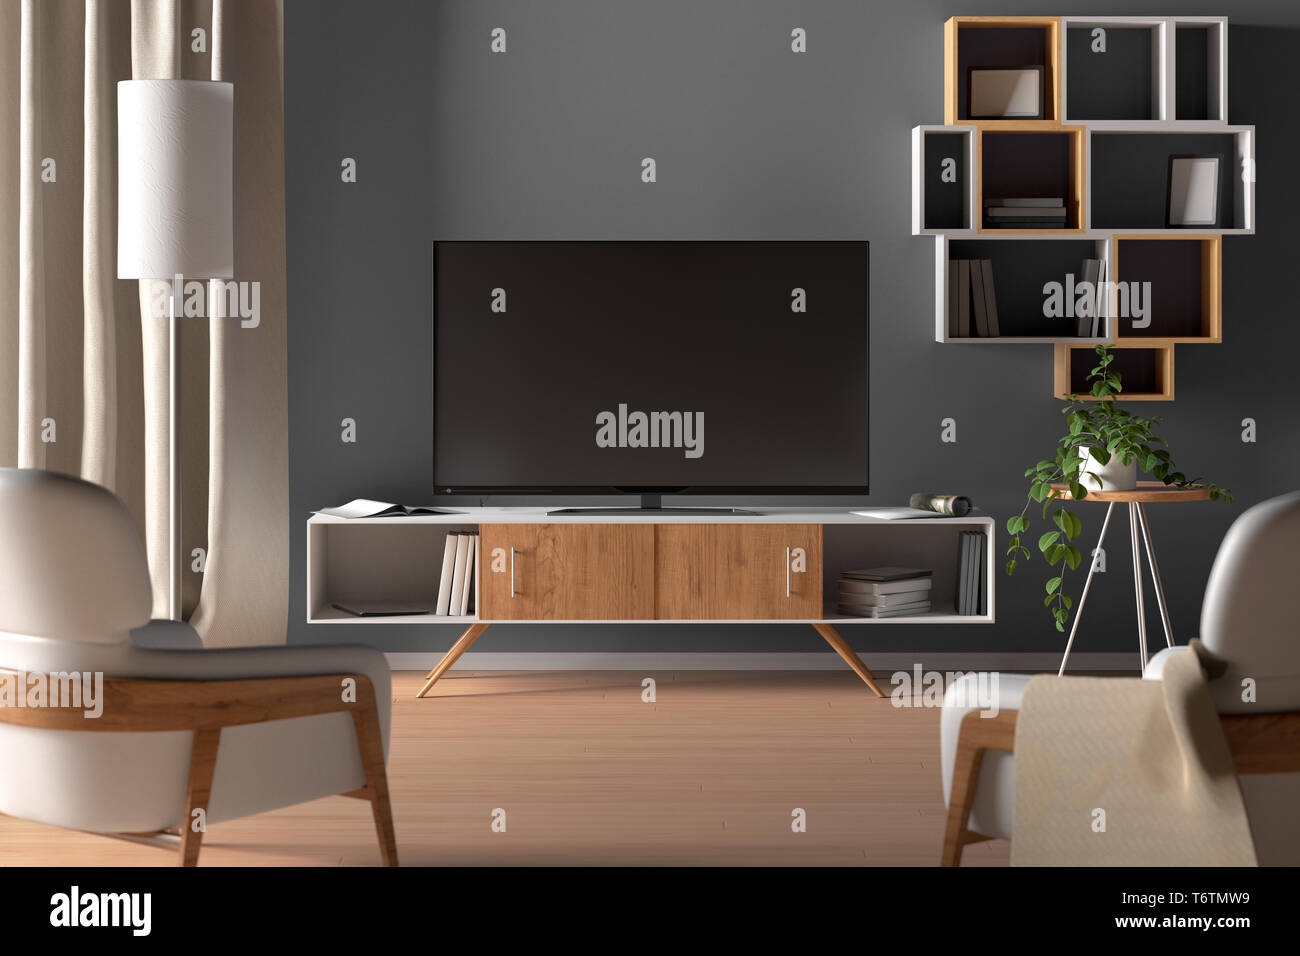 Tv On The Cabinet In Modern Living Room On Gray Wall